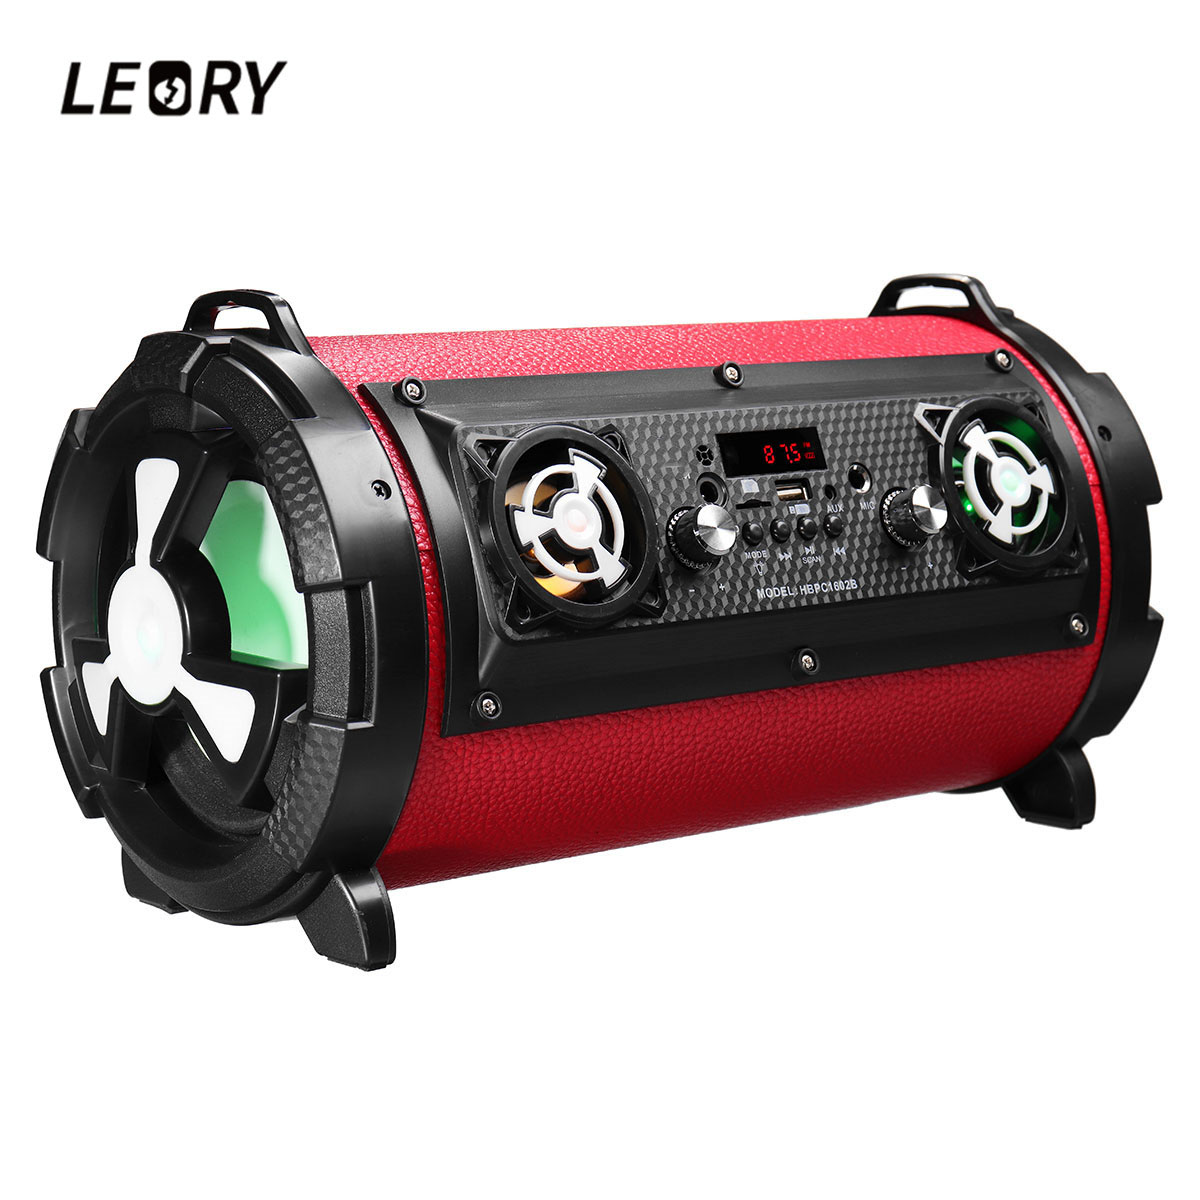 LEORY 15W Home TV Smartphones Wireless Bluetooth Speaker Portable Outdoor Subwoofer with Mic Multifunctional Large Power Speaker ручной душ roca stella 5b1b03c07